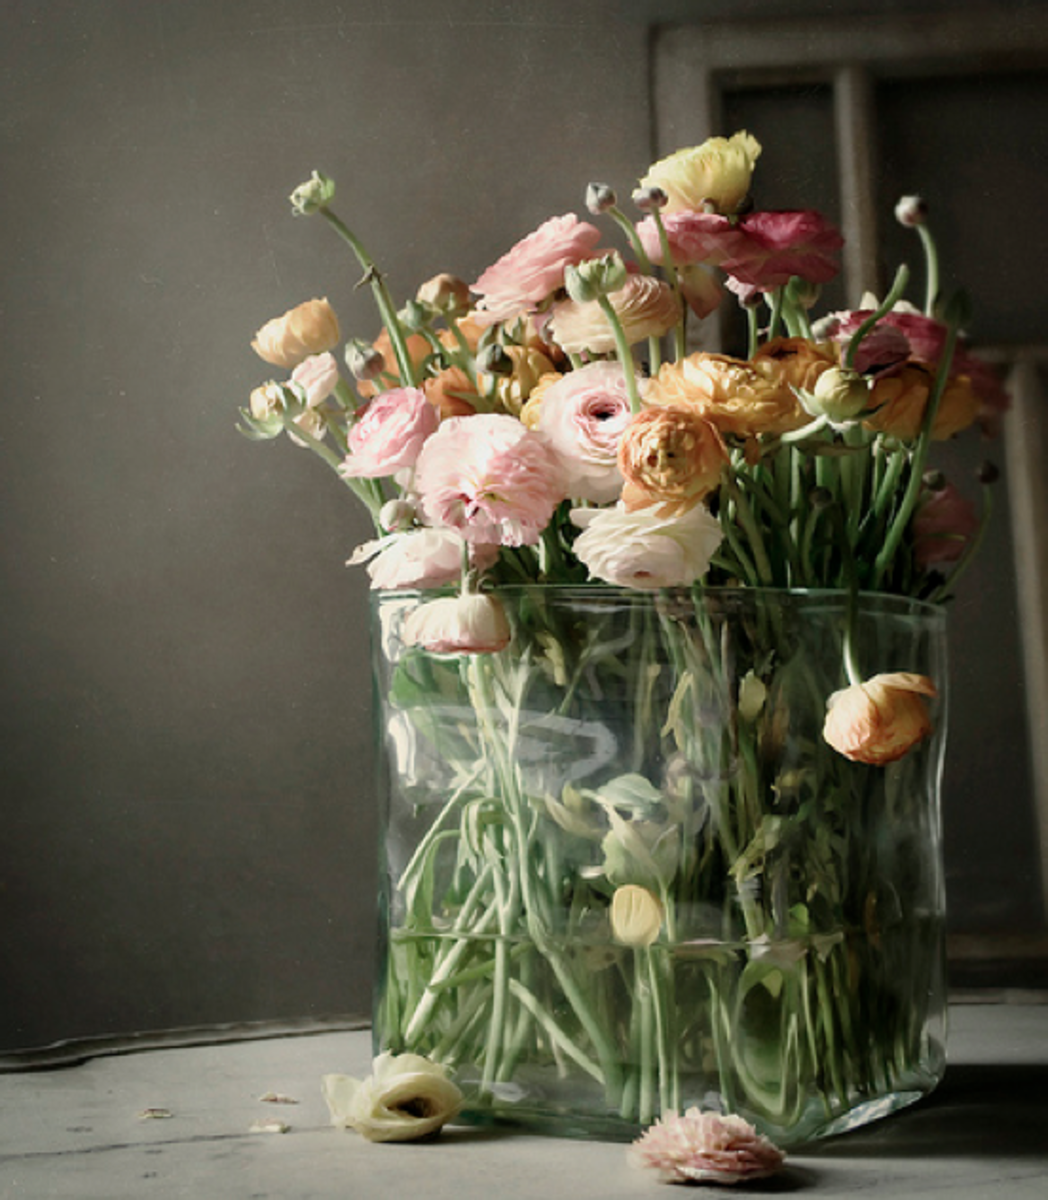 the charm of fragrant flowers